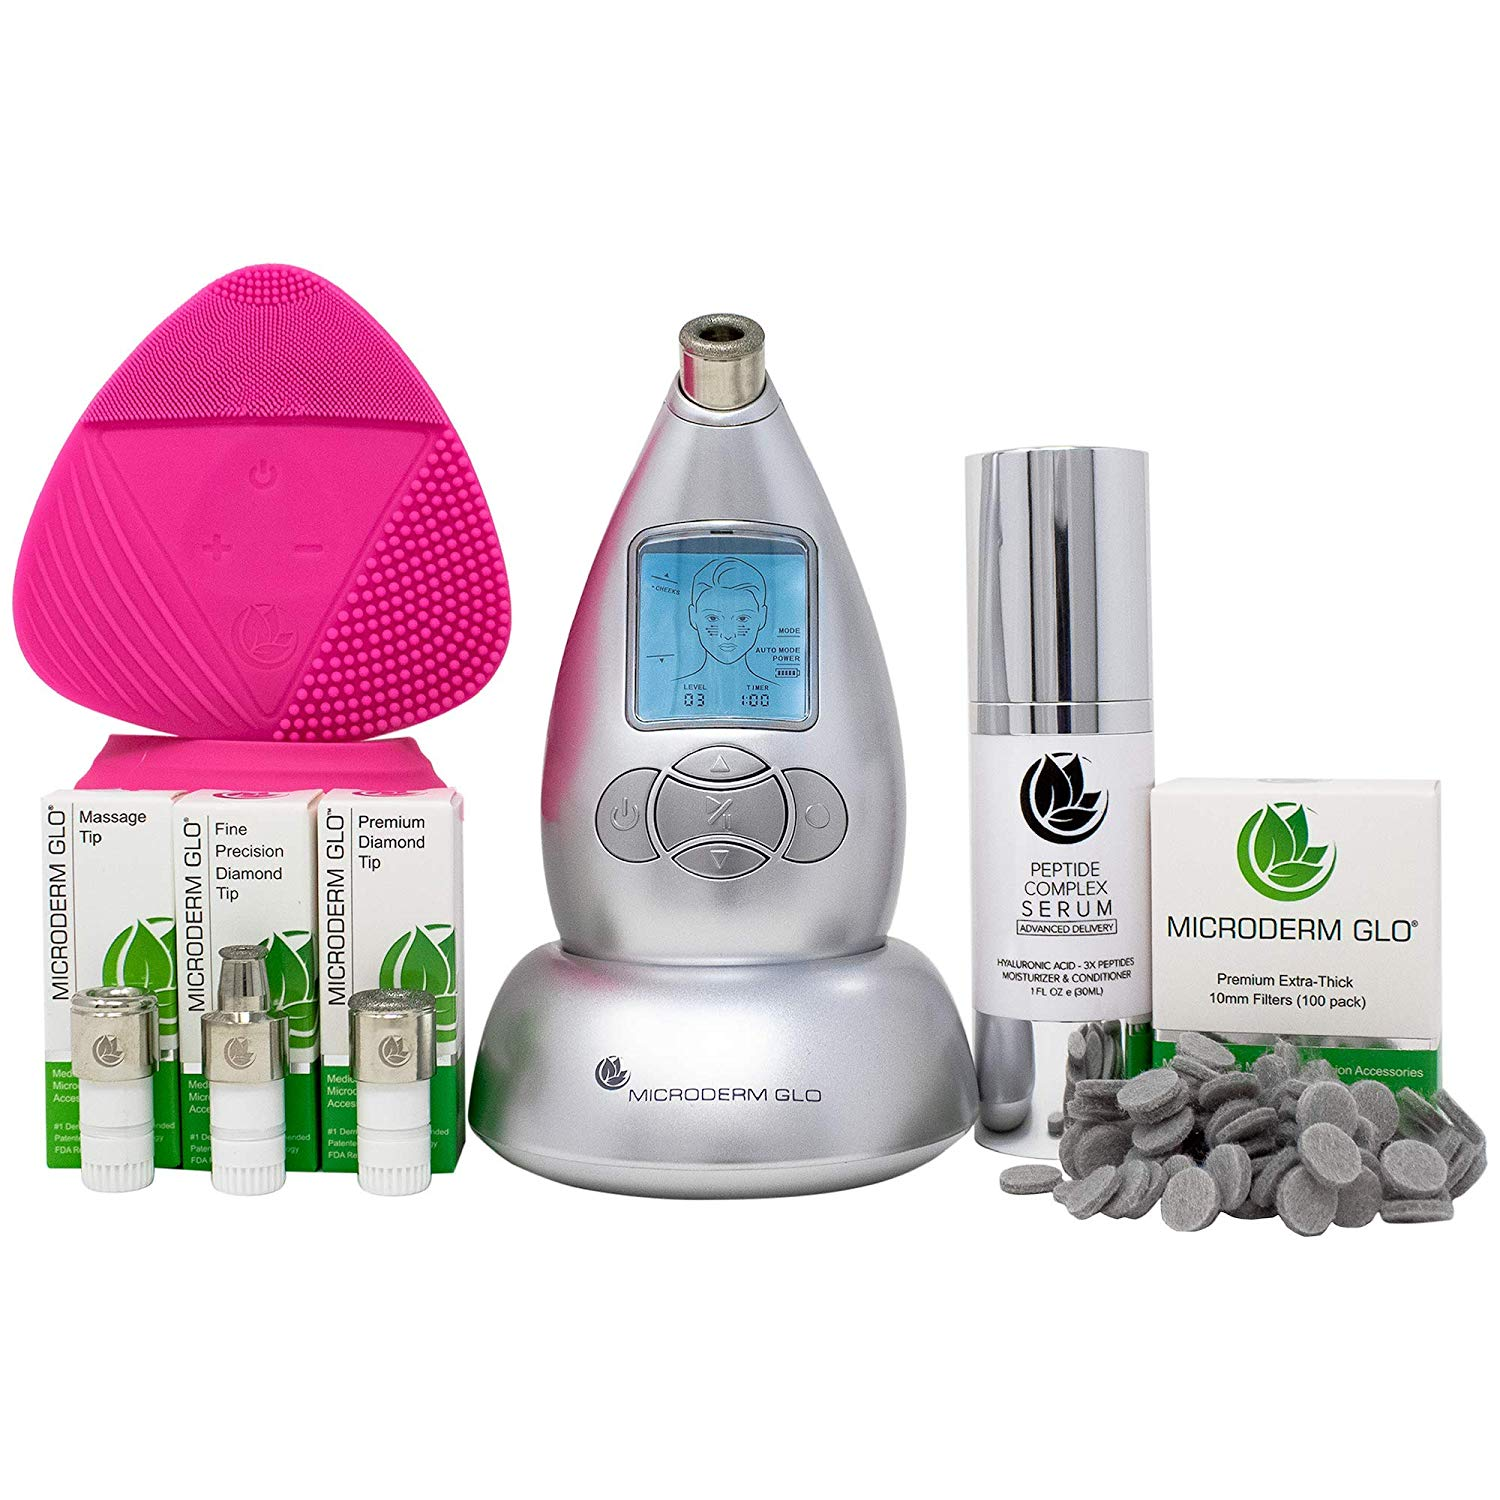 3. Microderm GLO Complete Skincare Package Includes Diamond Microdermabrasion System